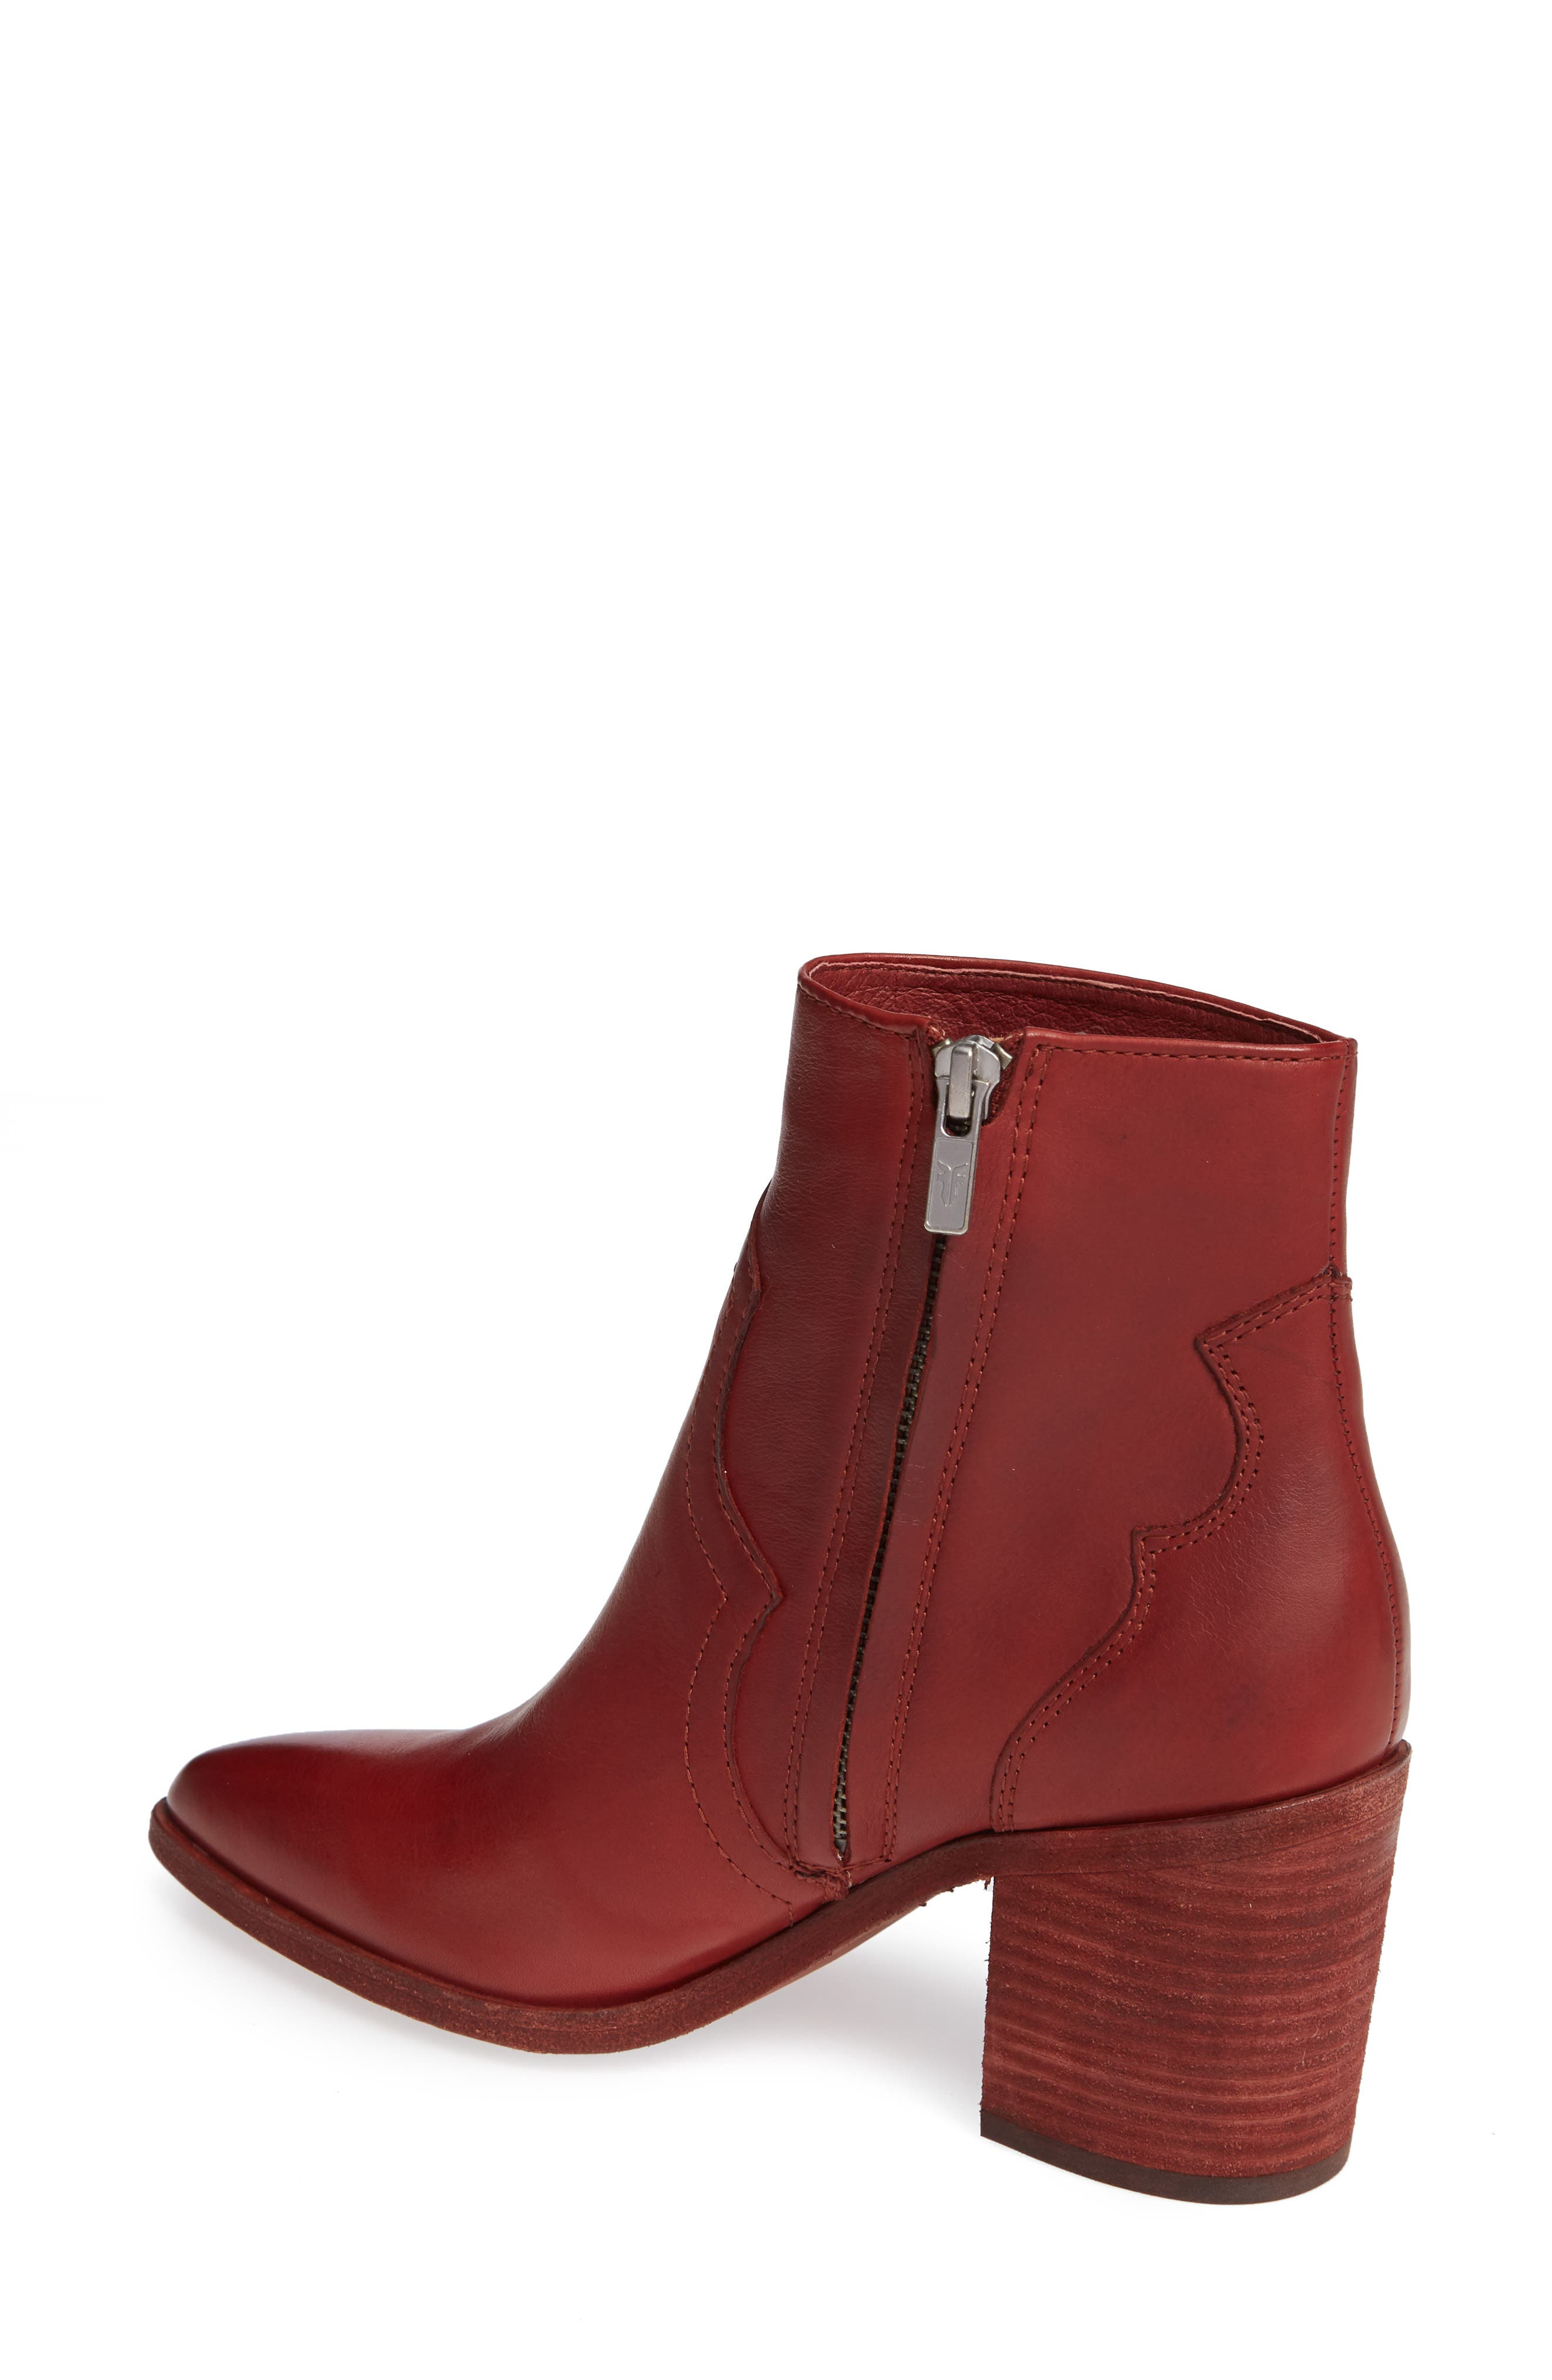 Flynn Bootie,                             Alternate thumbnail 2, color,                             RED CLAY LEATHER